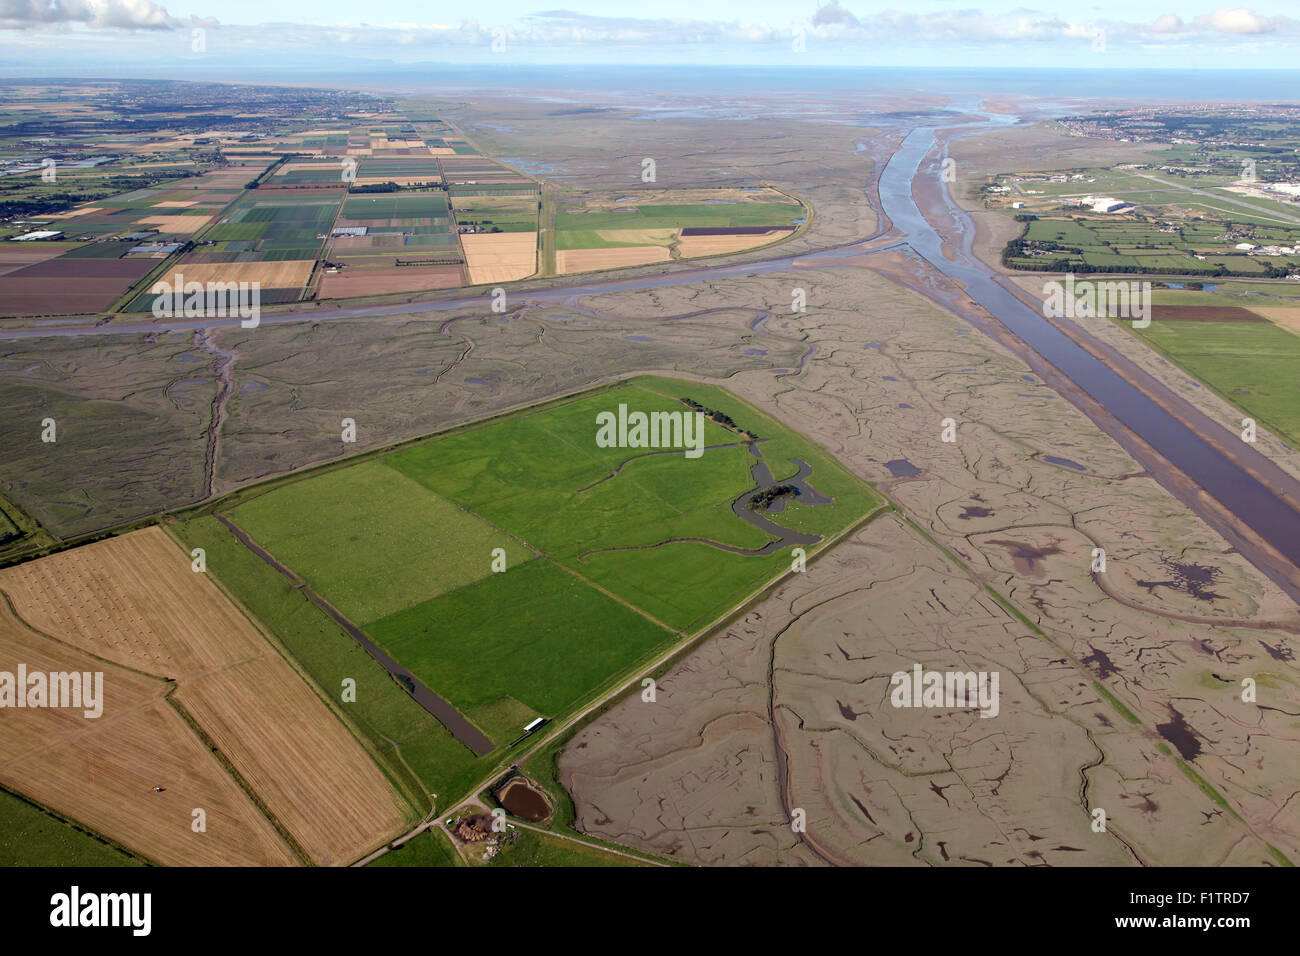 aerial view of reclaimed farm land in the Ribble Estuary at Hutton, Lancashire, UK Stock Photo